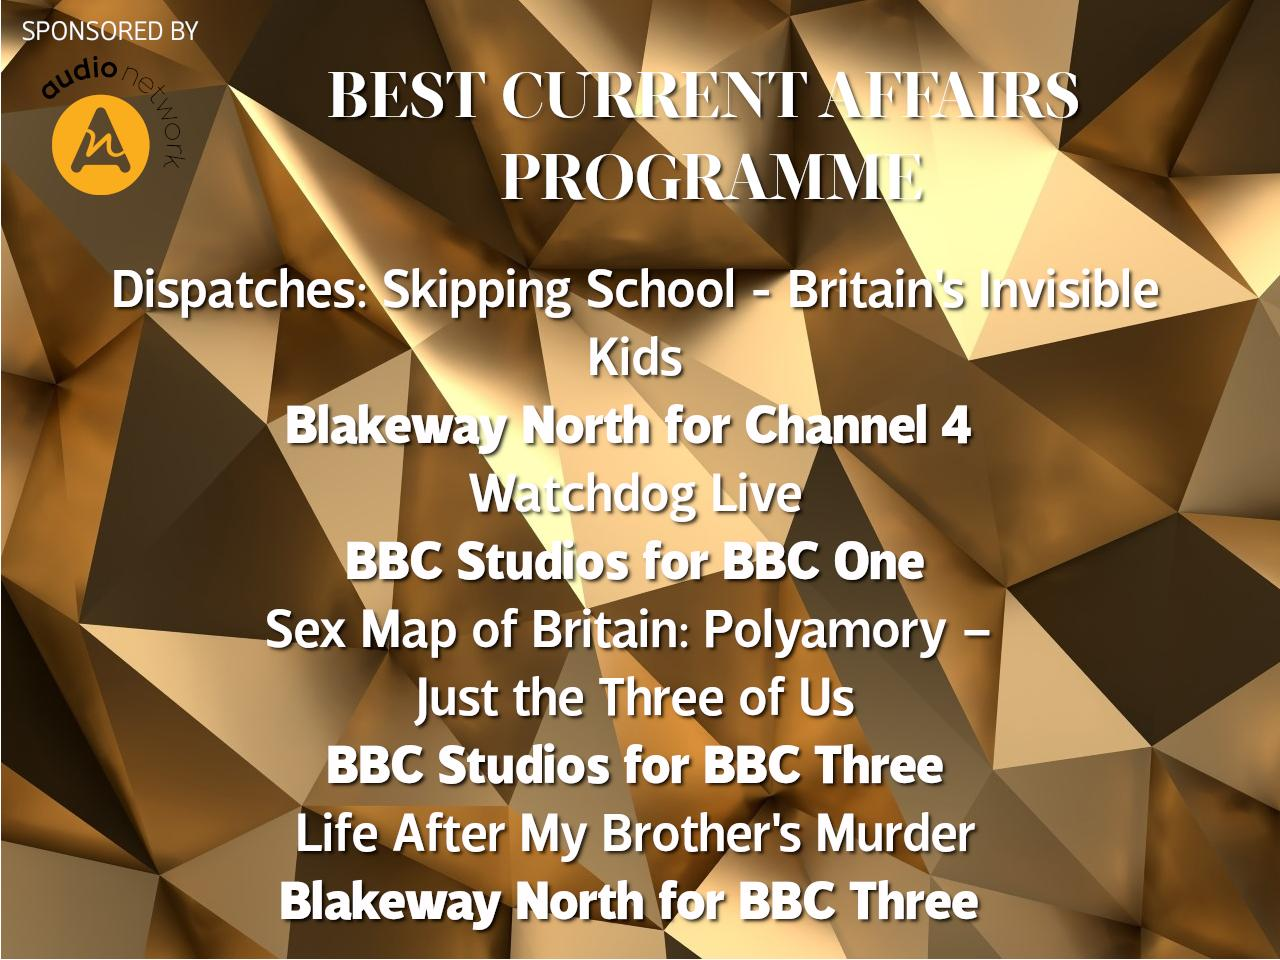 RTS North West Nominations